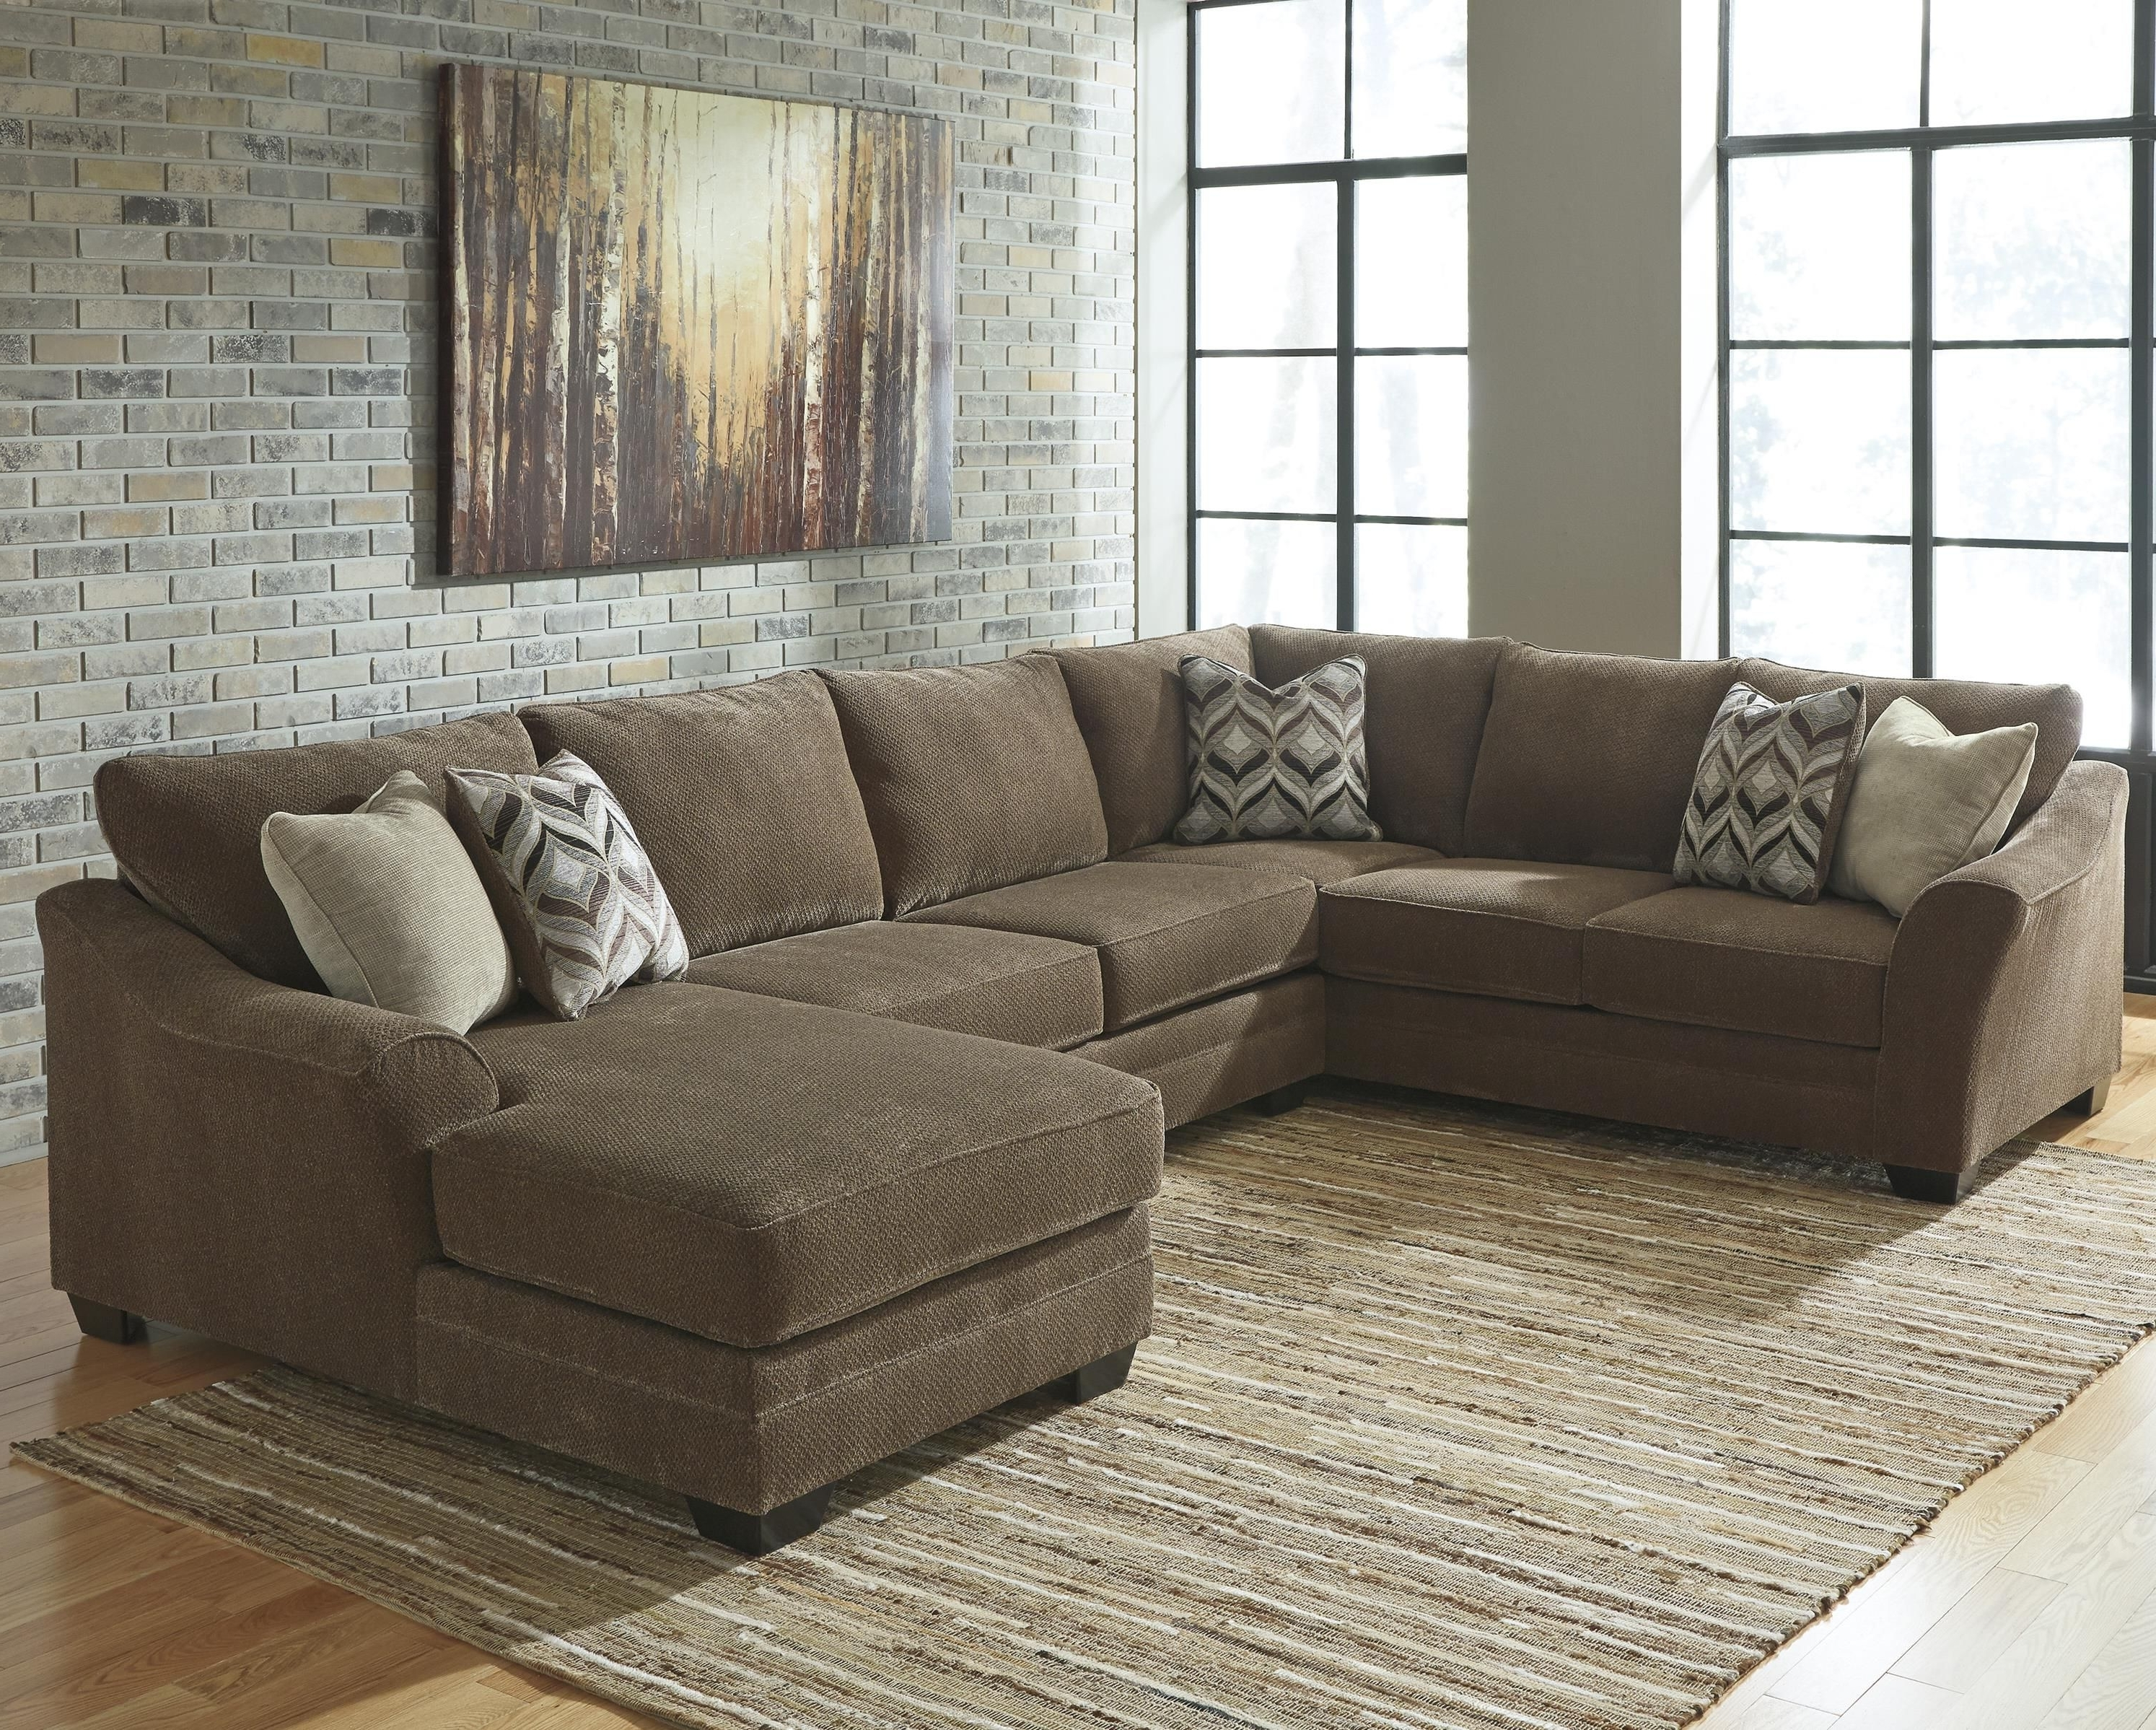 Royal Furniture Sectional Sofas With Regard To Most Current Justyna Contemporary 3 Piece Sectional With Right Chaise (View 4 of 20)